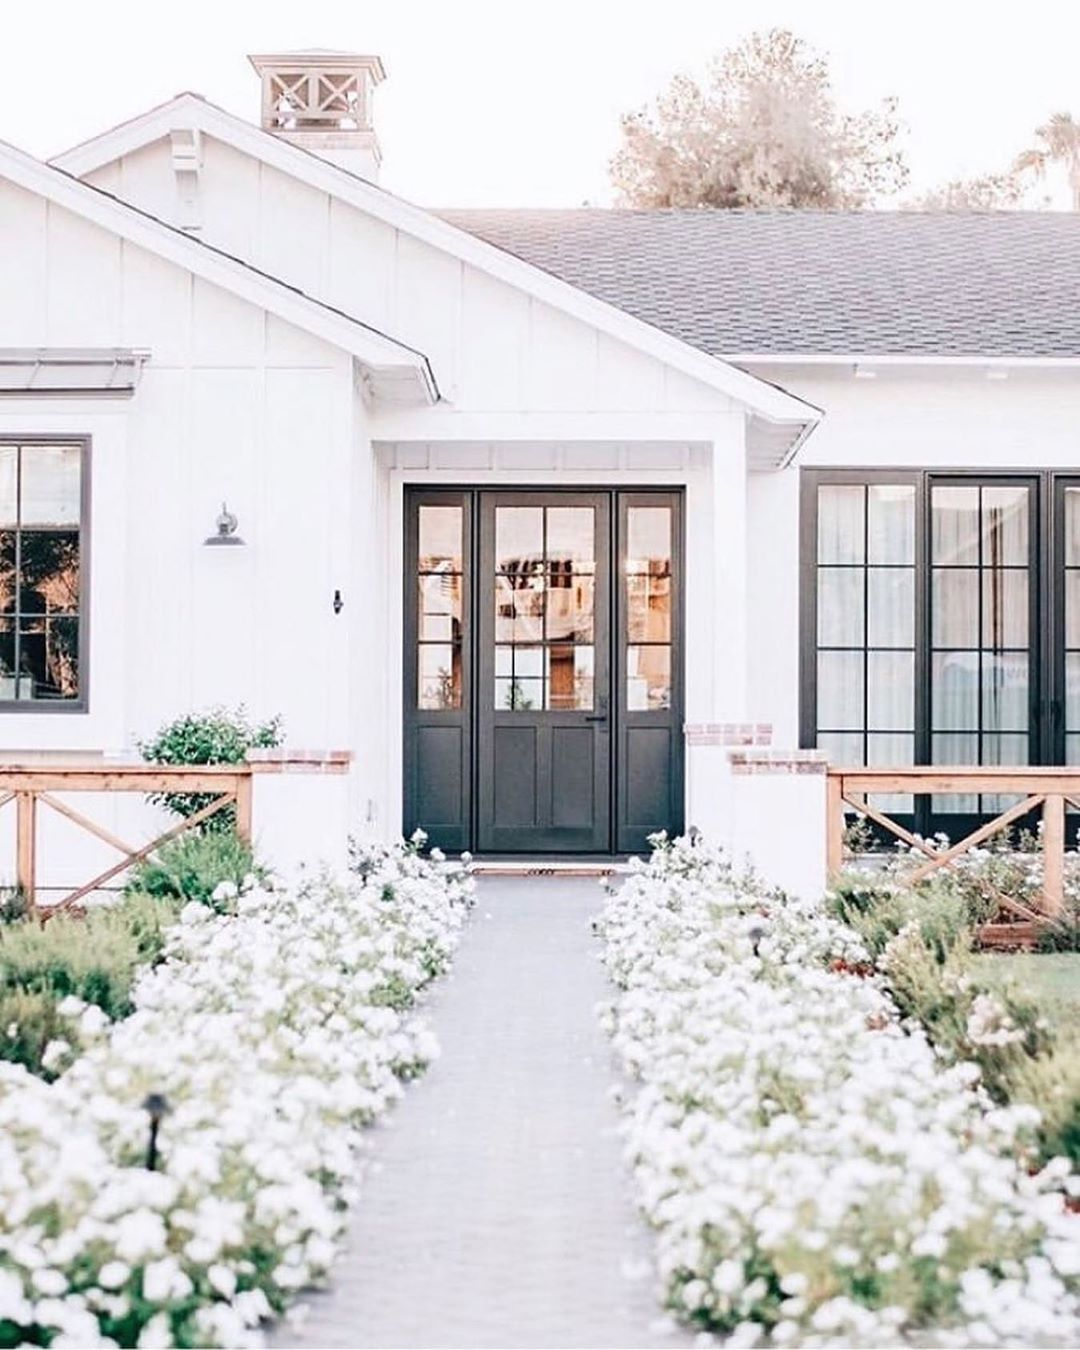 Beautiful white home with black windows and a gorgeous floral flanked path to the front door. Charming inspiration if you love white painted house exteriors! #whitehouses #housedesign #exteriors #curbappeal